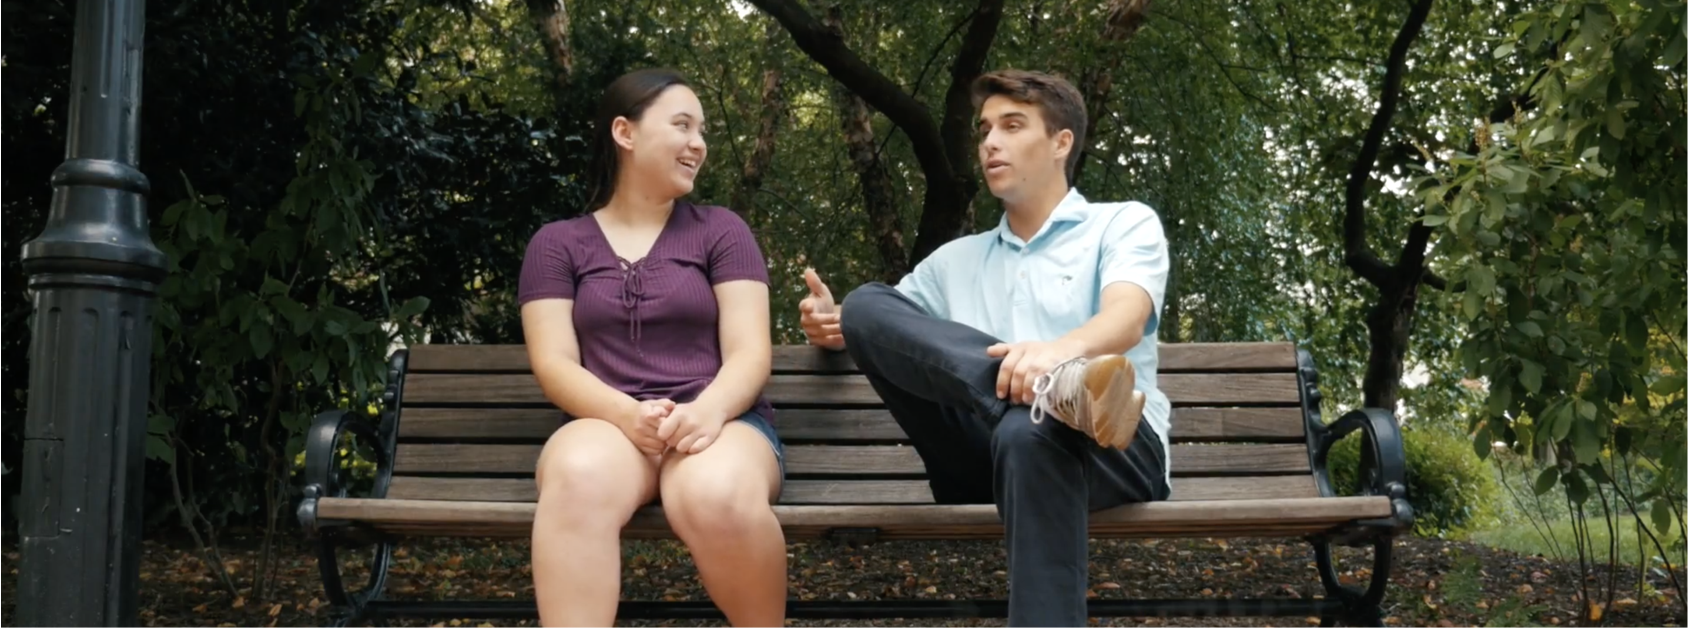 Epilepsy and the College Transition: Julia and Brian's Story